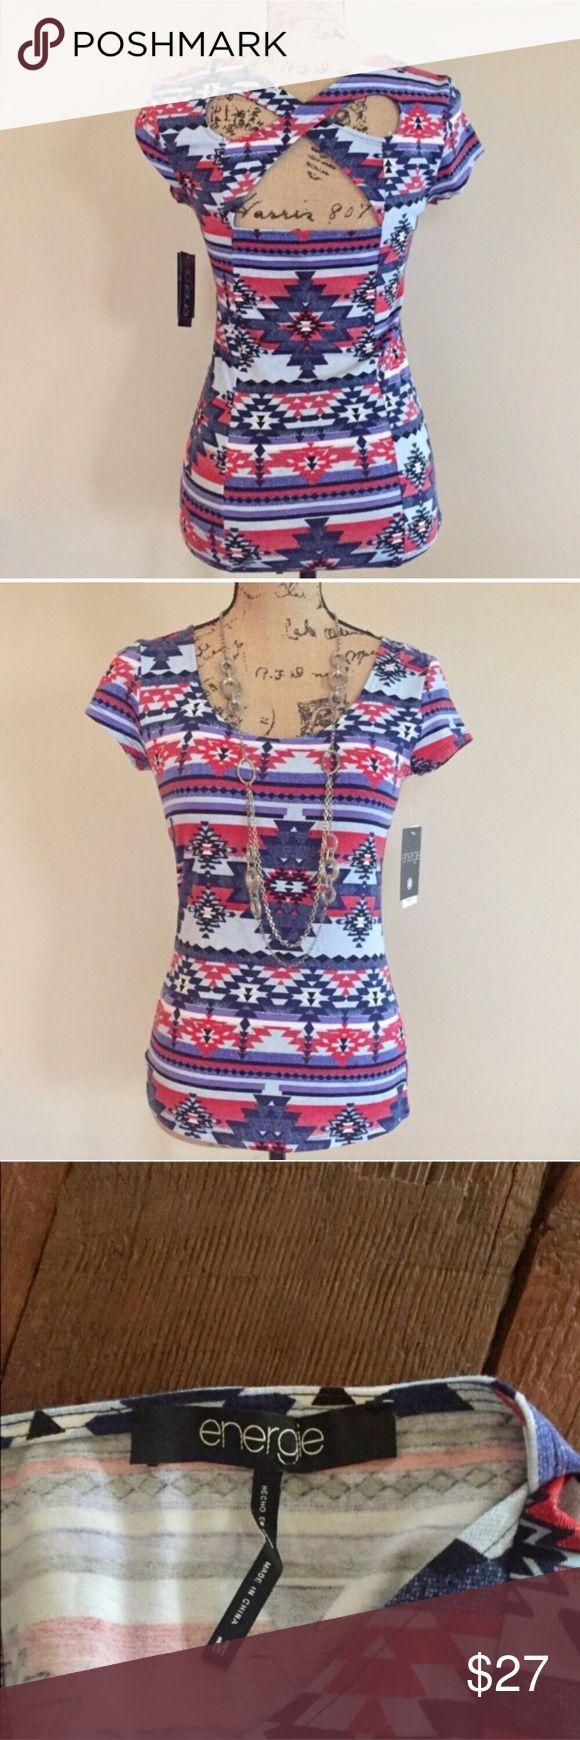 """NWT energie cross back top NWT blue and red Southwestern print top from energie for Macy's has a cross cross accent back. Accents of black, white, and lavender. Scoop neck, short sleeves, fitted shape. Size M. 95% cotton 5% elastane. Machine wash. Bust measures 16"""", length 25"""".  ⭐️ Macy's Tops"""